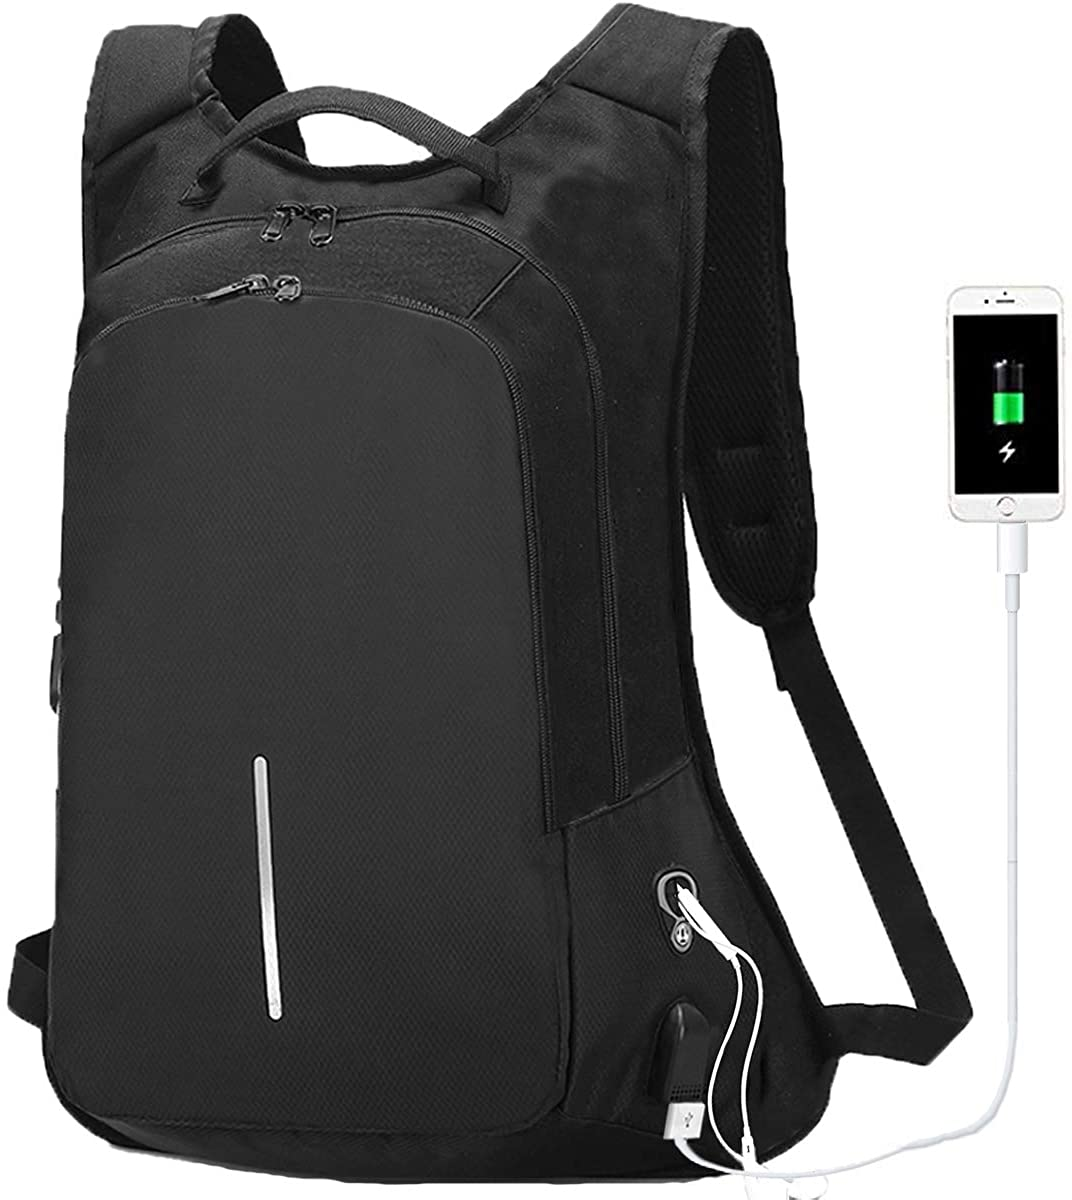 Anti-theft Laptop Backpack 15.6 Inch, Waterproof College Bookbag with Usb Charging Port for Men Women